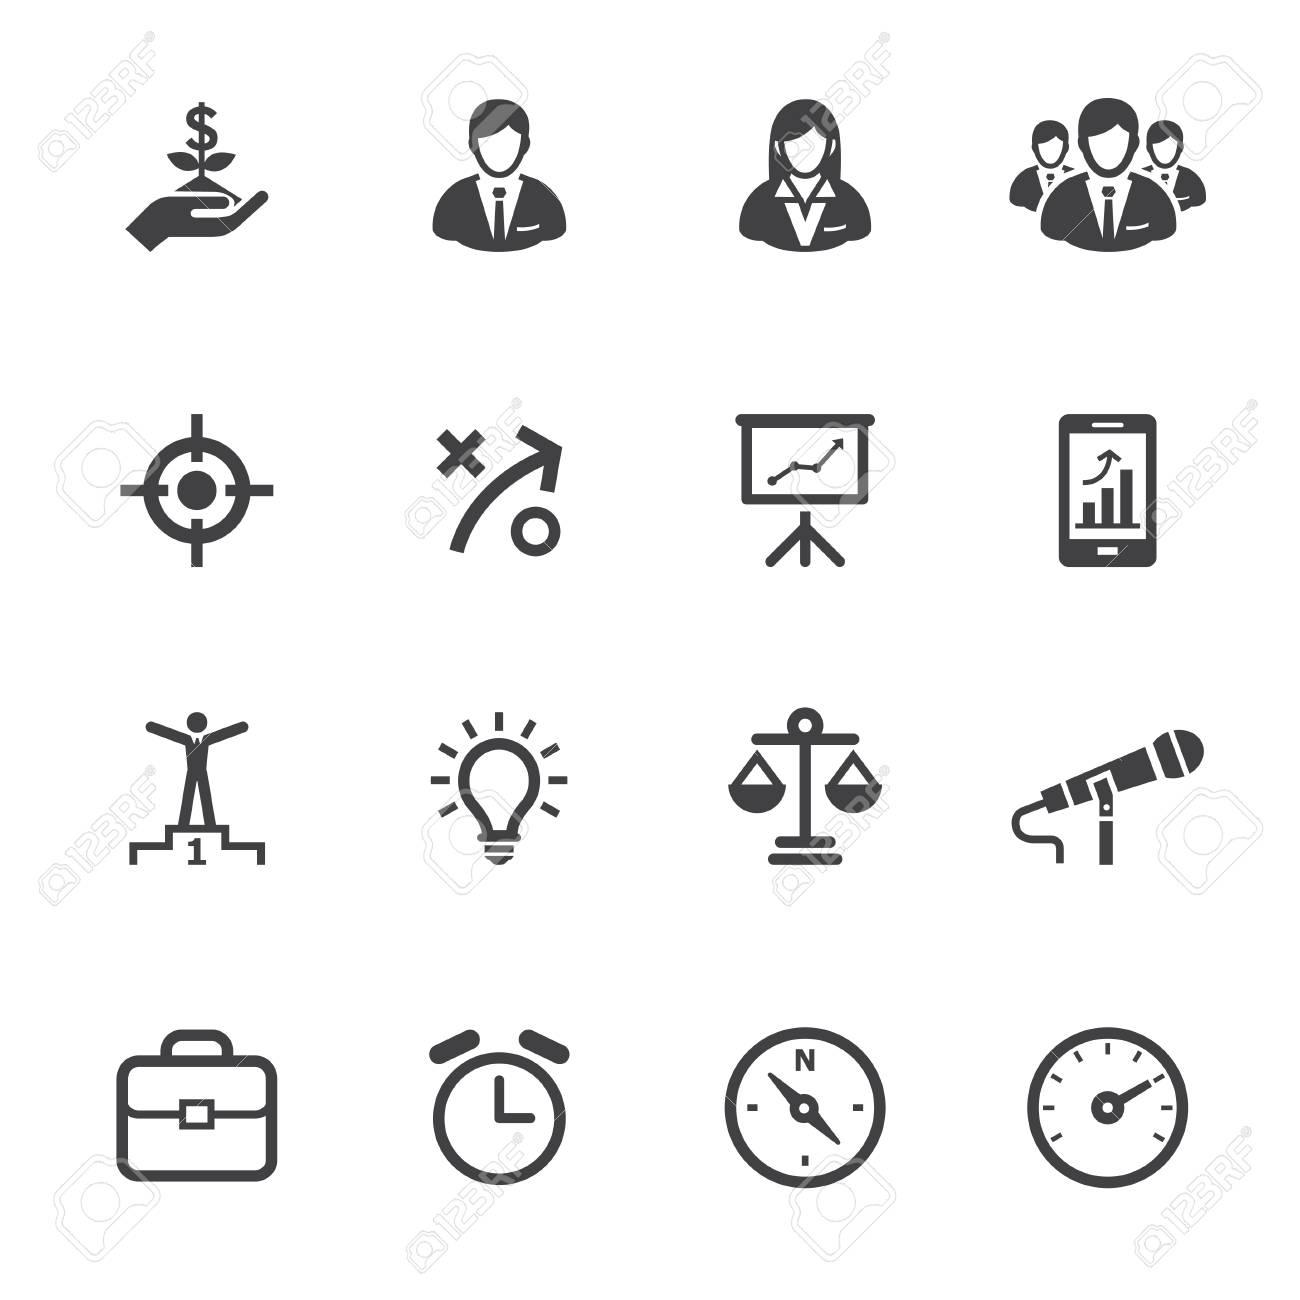 Business Icons and Finance Icons with White Background Stock Vector - 22521857